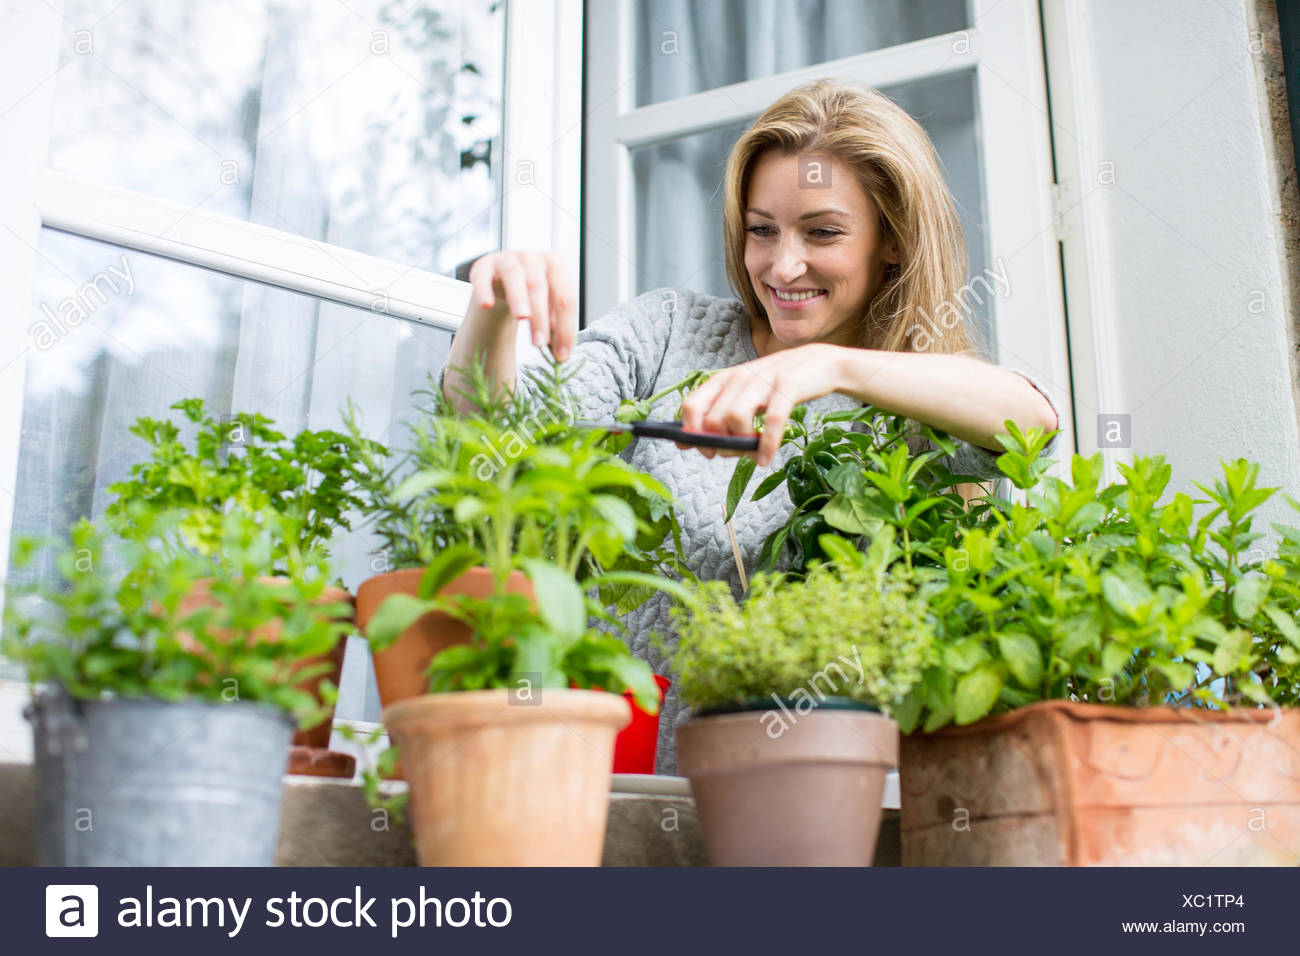 Woman clipping herb plants on windowsill - Stock Image